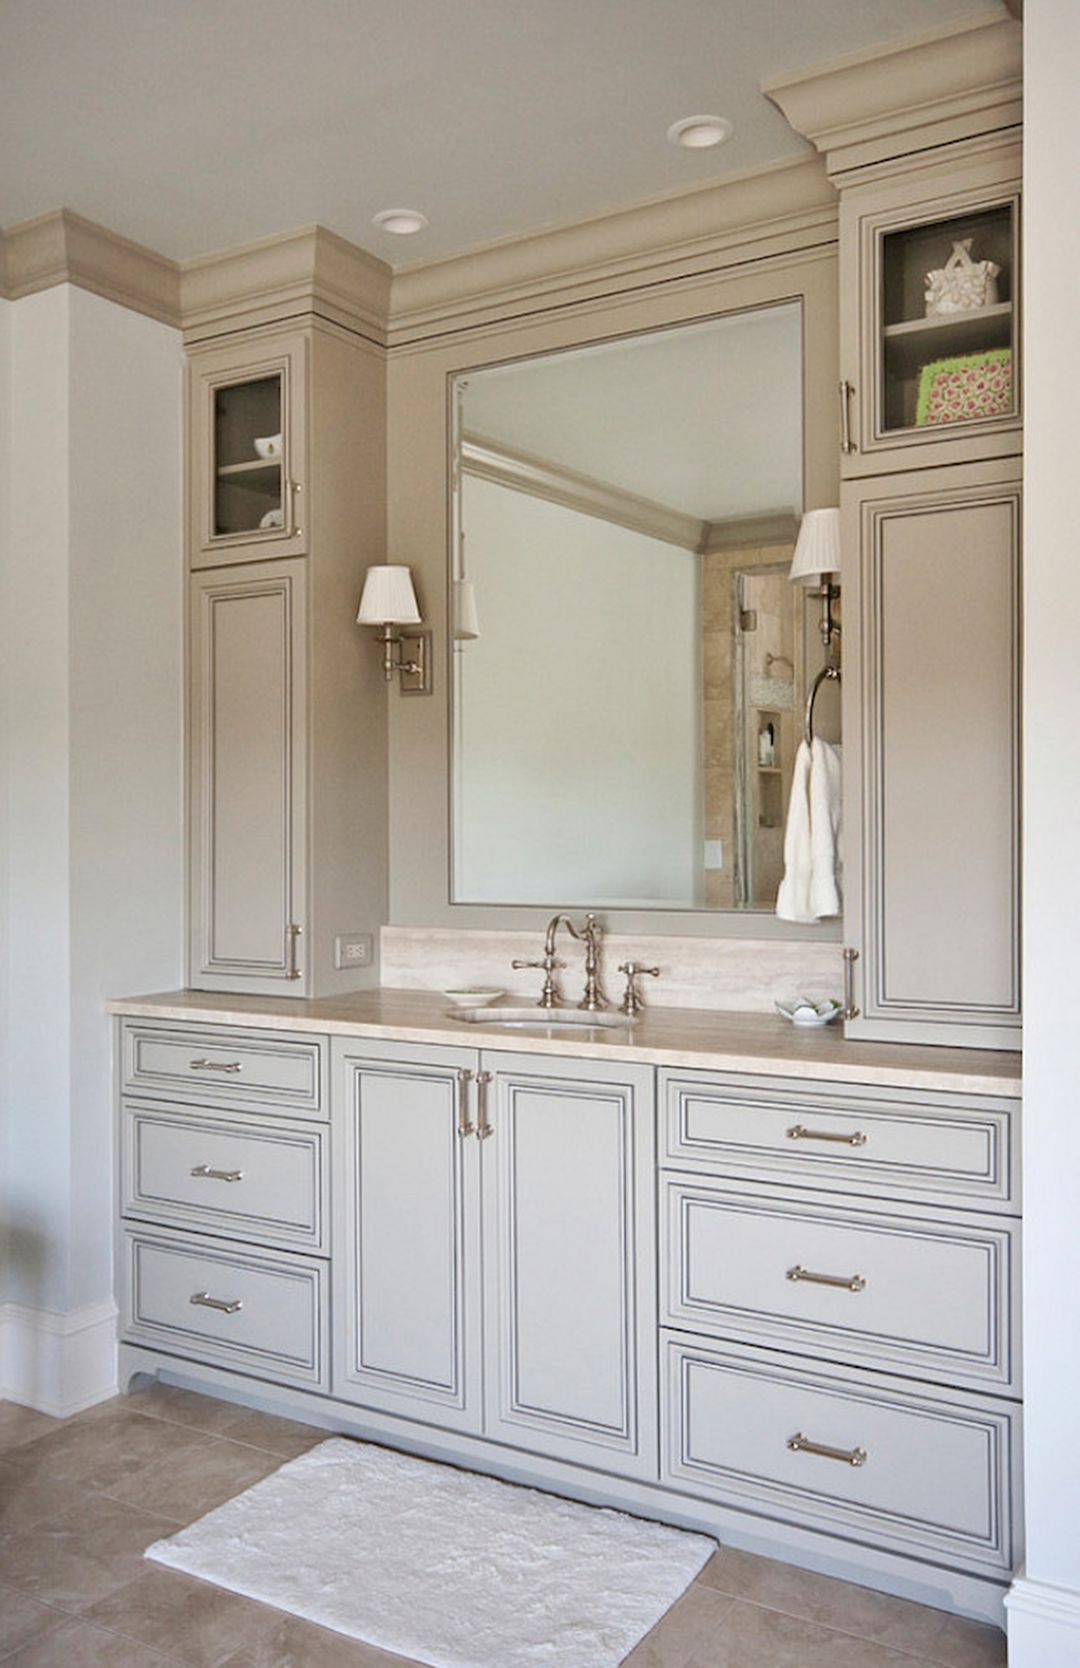 Vanity Designs For Small Bathrooms Endearing 20 Best Double Vanity Design Ideas For Small Bathroom  Double Design Ideas